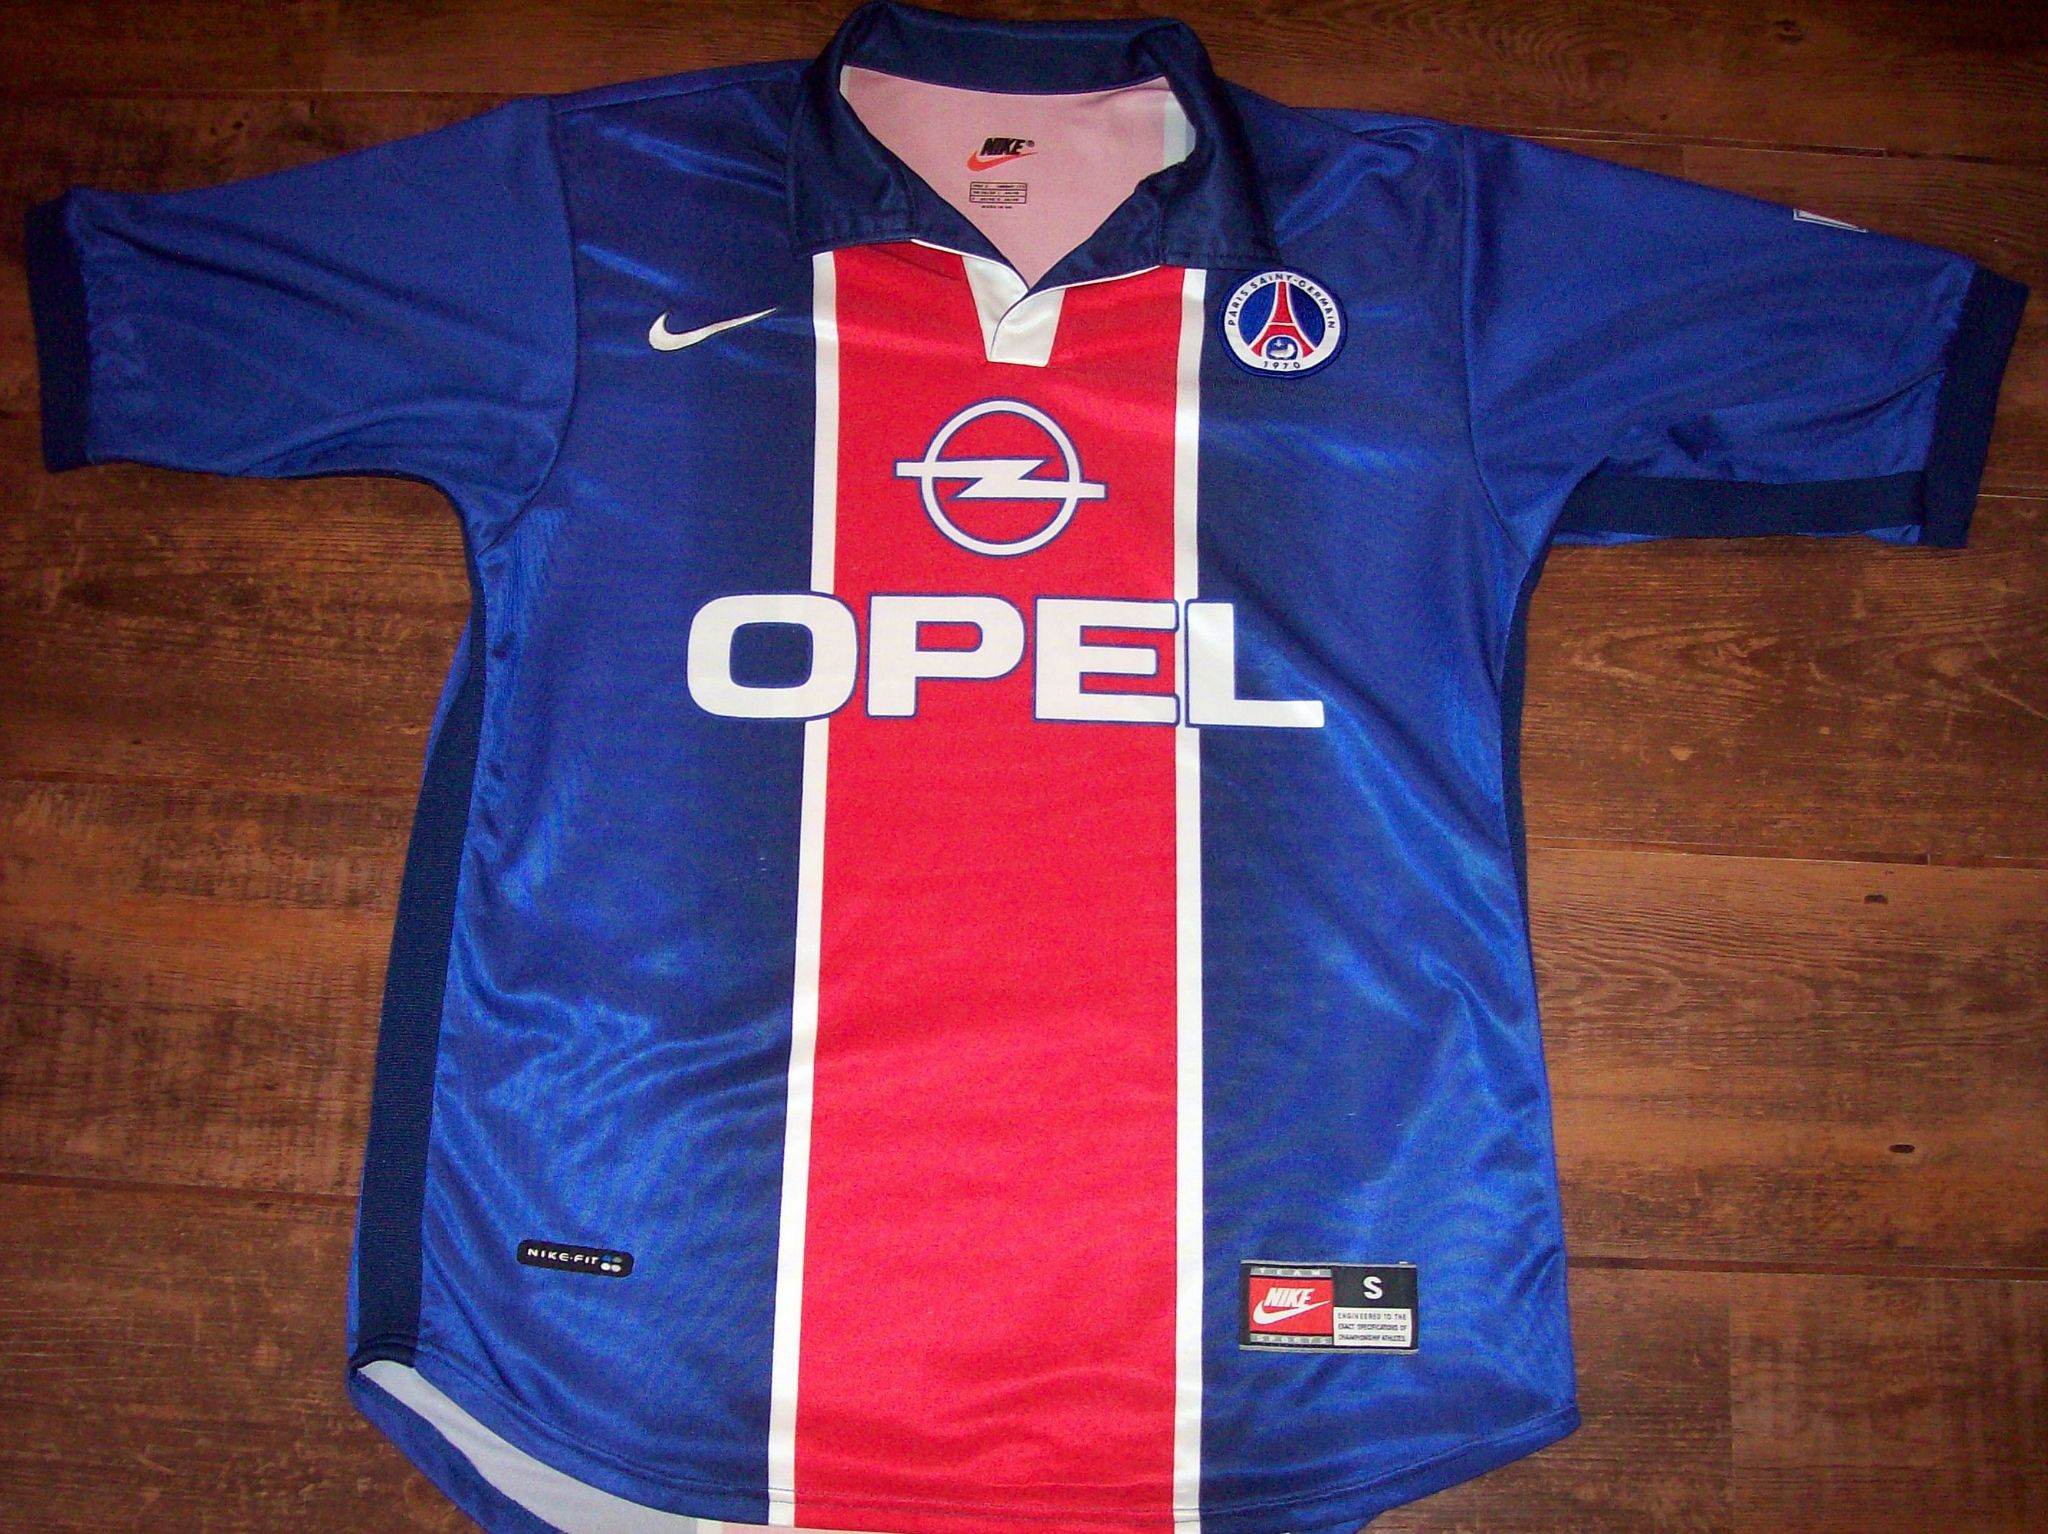 Global Classic Football Shirts | Retro Old Vintage Soccer ...